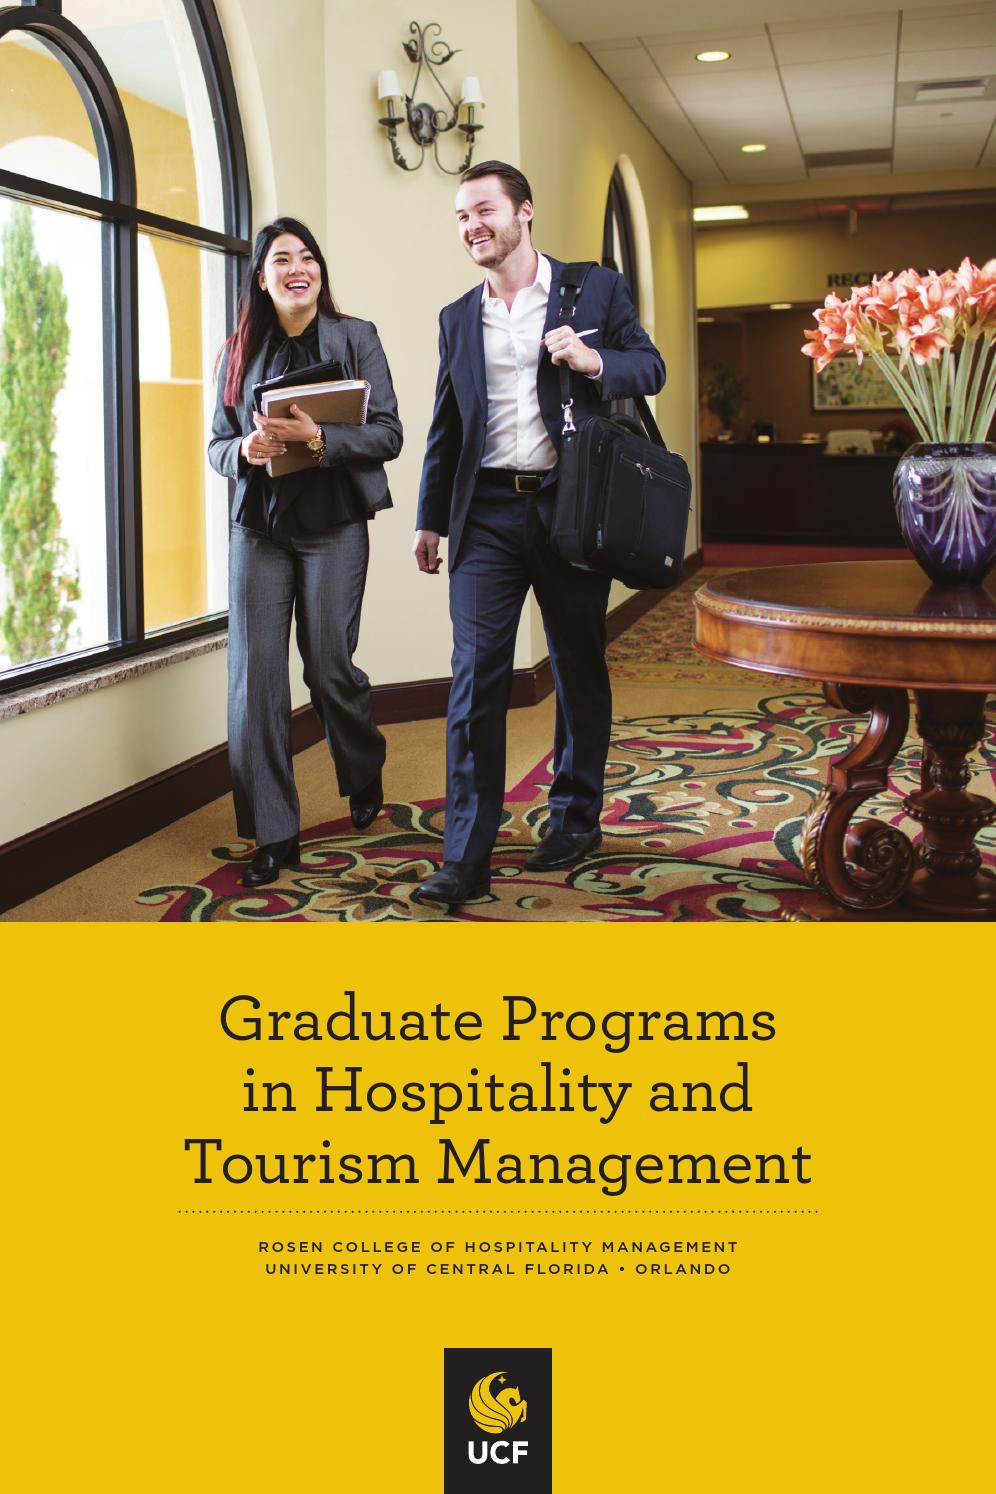 Ucf Rosen College Graduate Programs In Hospitality And